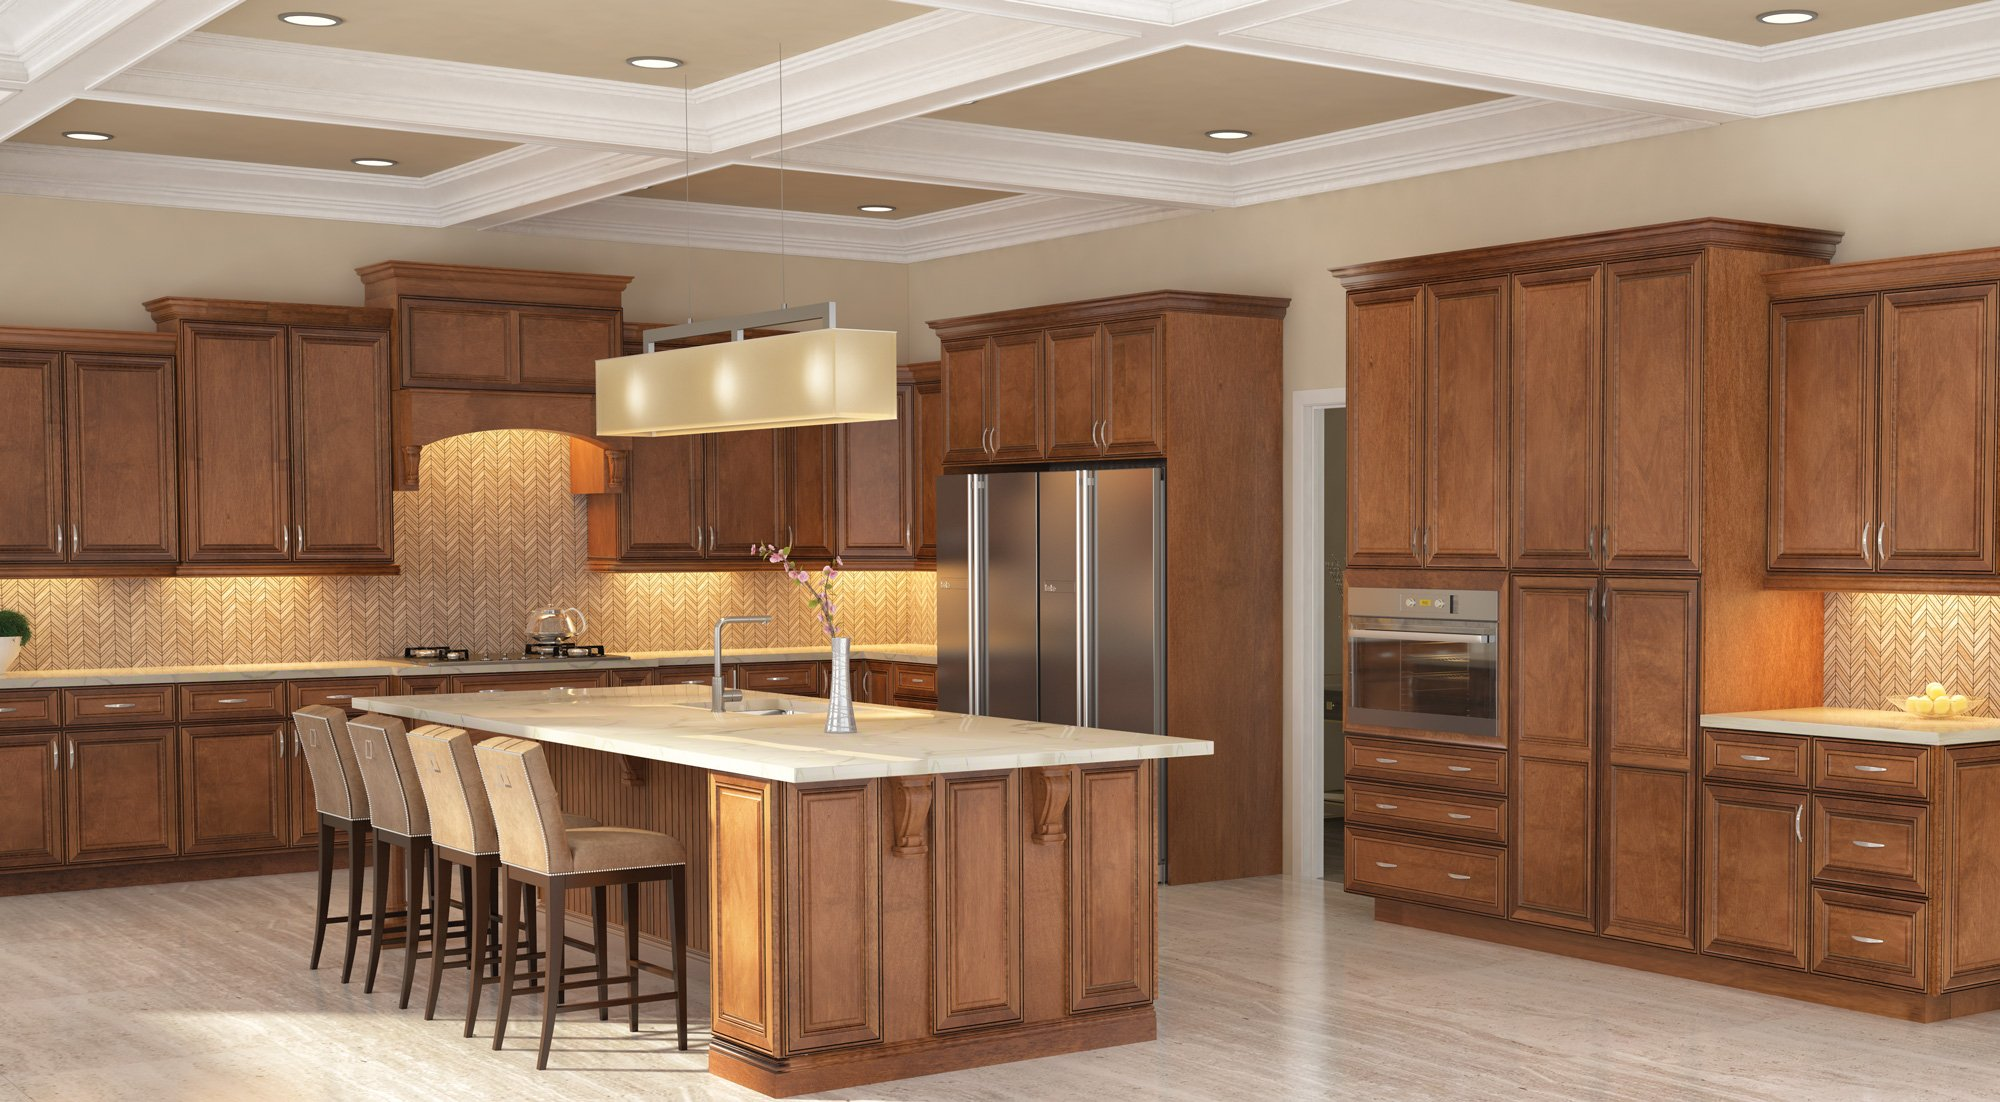 Cubitac Imperial Series Alba Kitchen Design Center Kitchen Cabinets Nj